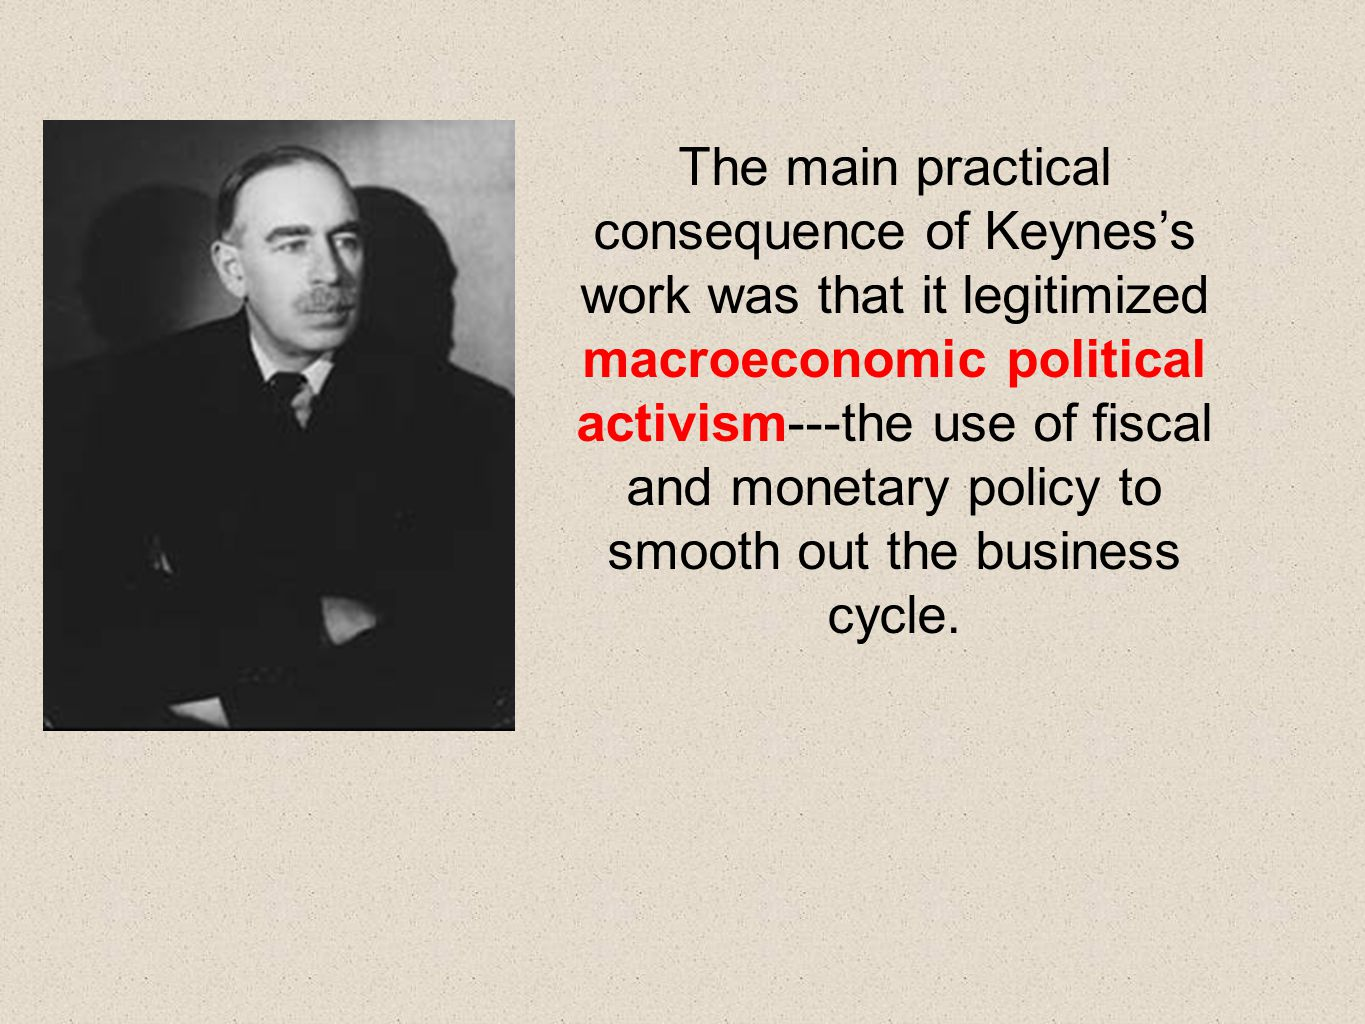 The main practical consequence of Keynes's work was that it legitimized macroeconomic political activism---the use of fiscal and monetary policy to smooth out the business cycle.